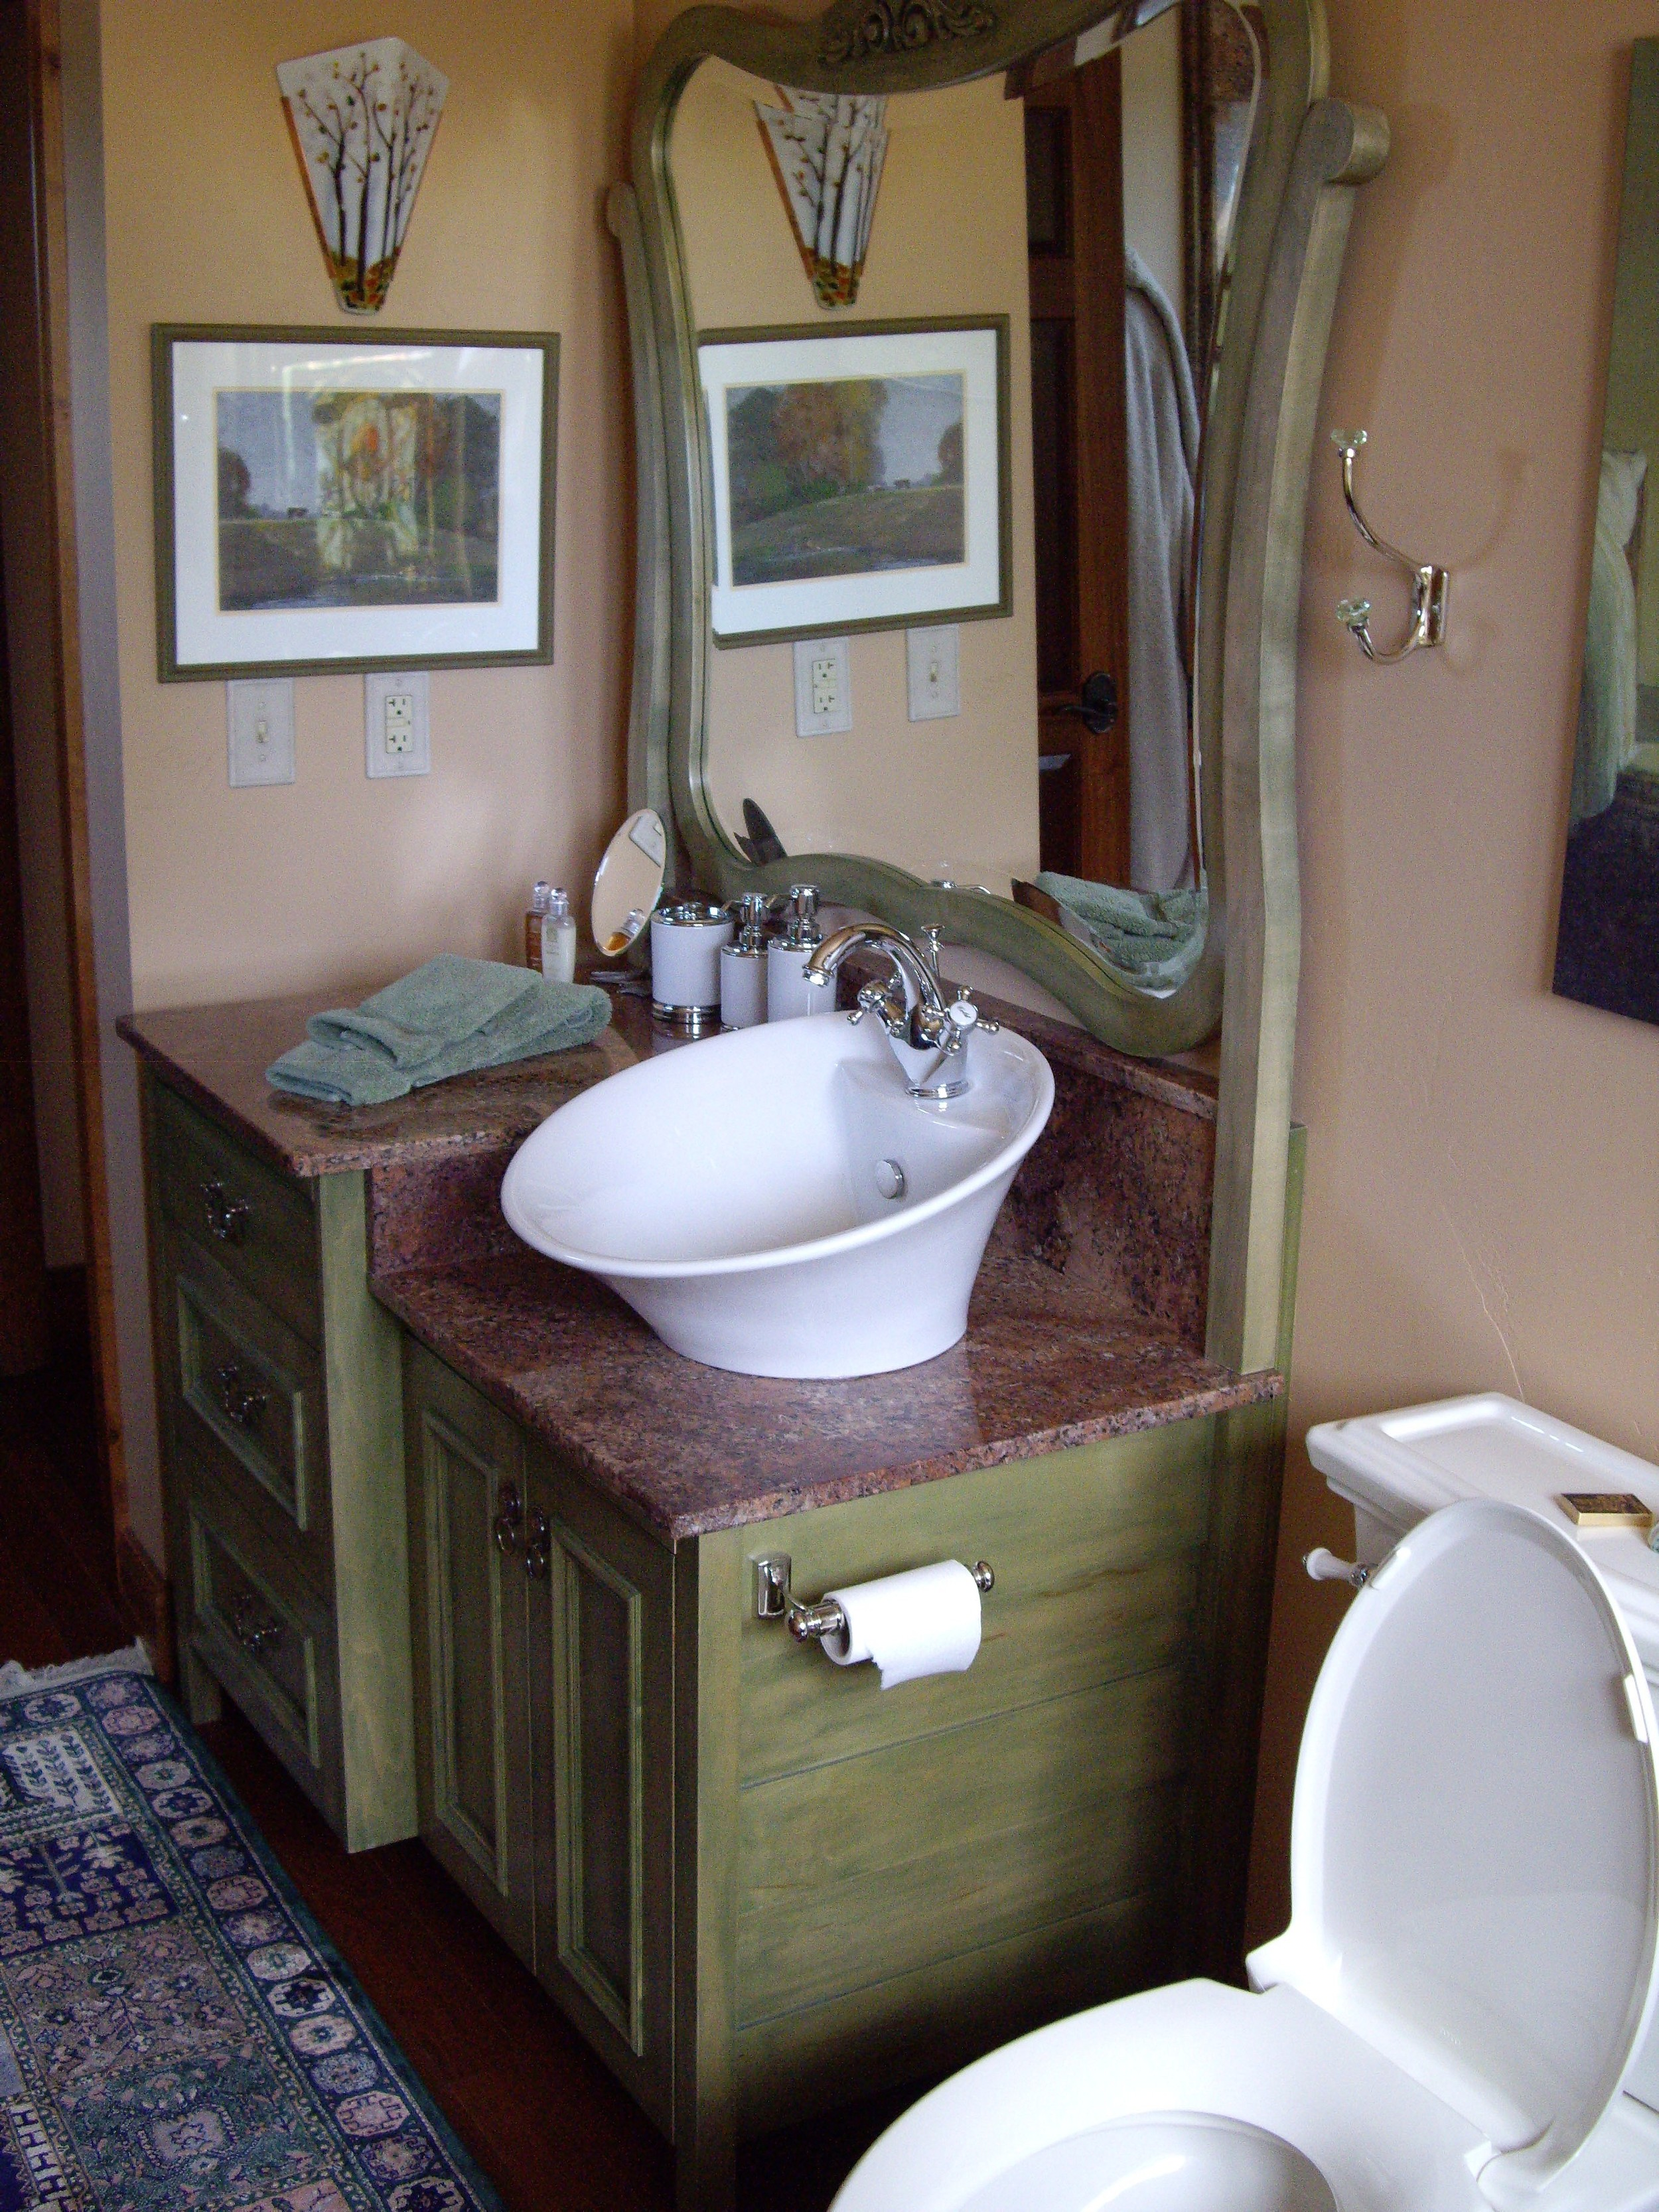 shasta-wood-products-residential-08.jpg